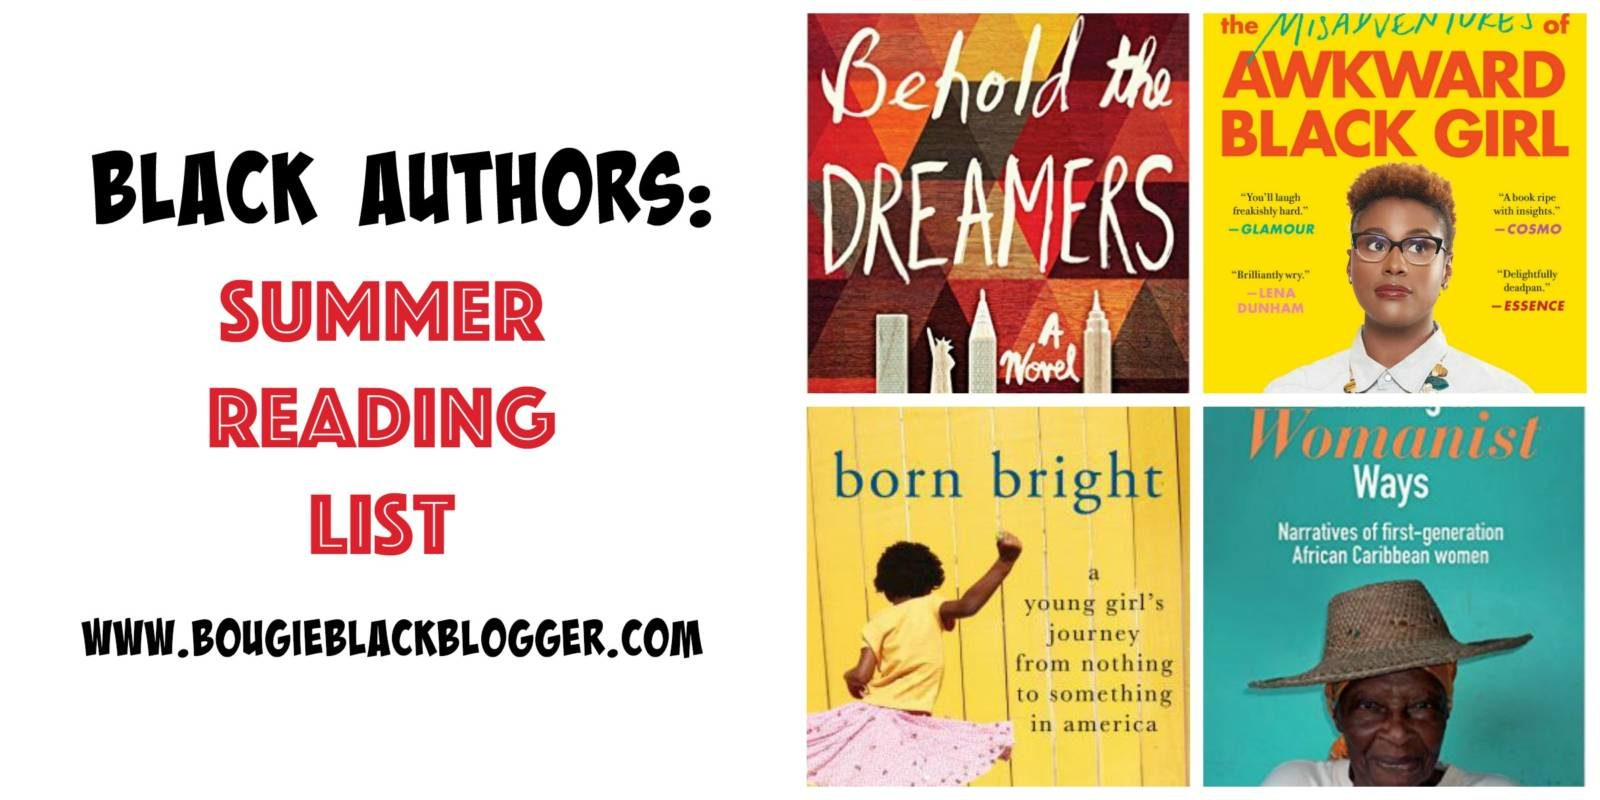 Black Authors: Awkward Black Girl and More Summer Reading List